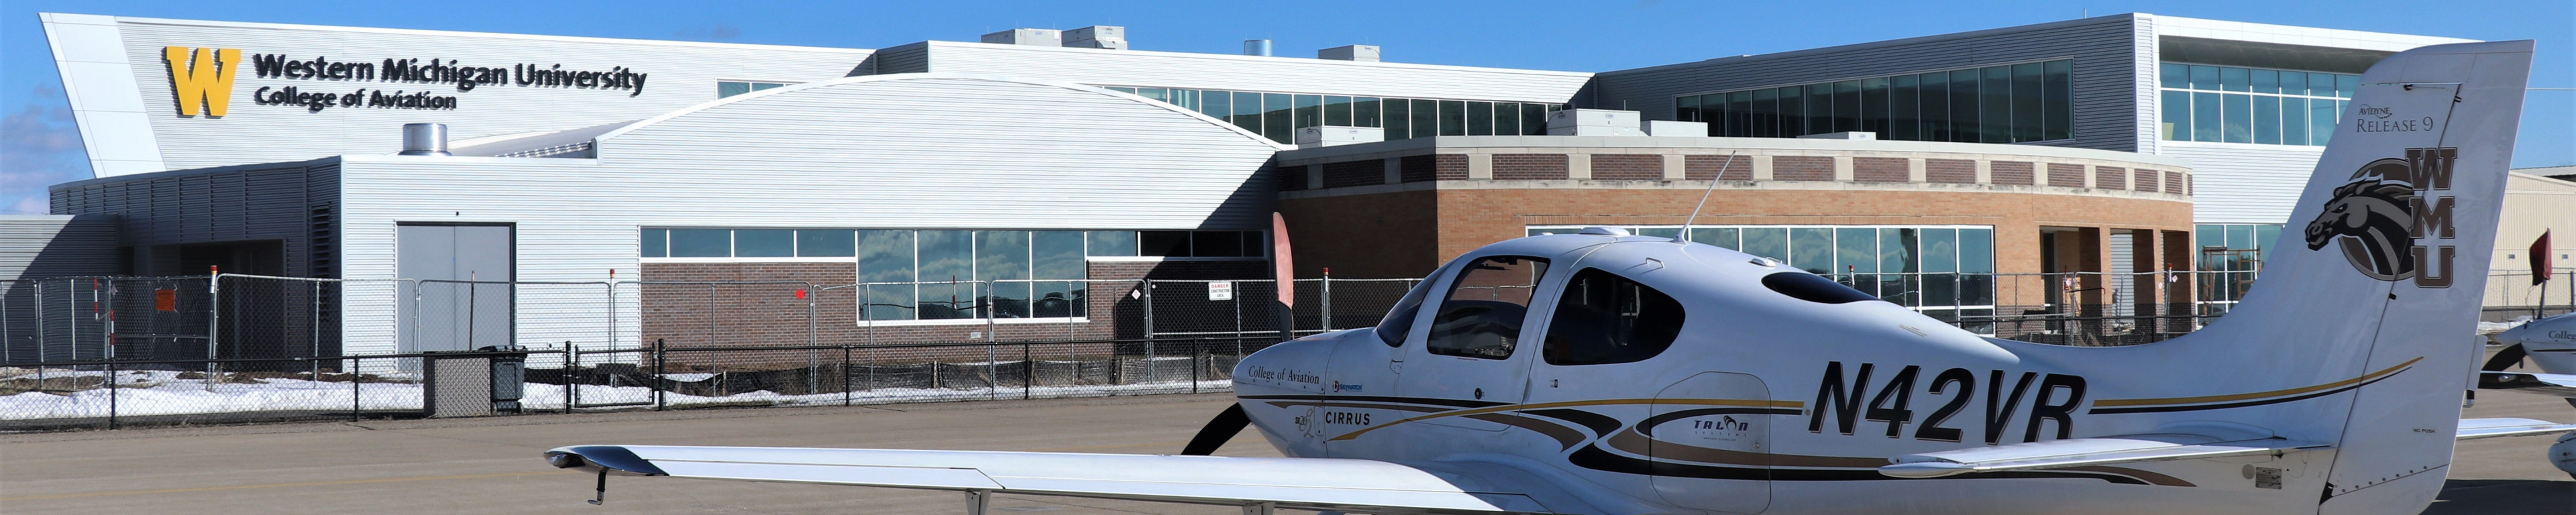 AEC outside view with Cirrus airplane.